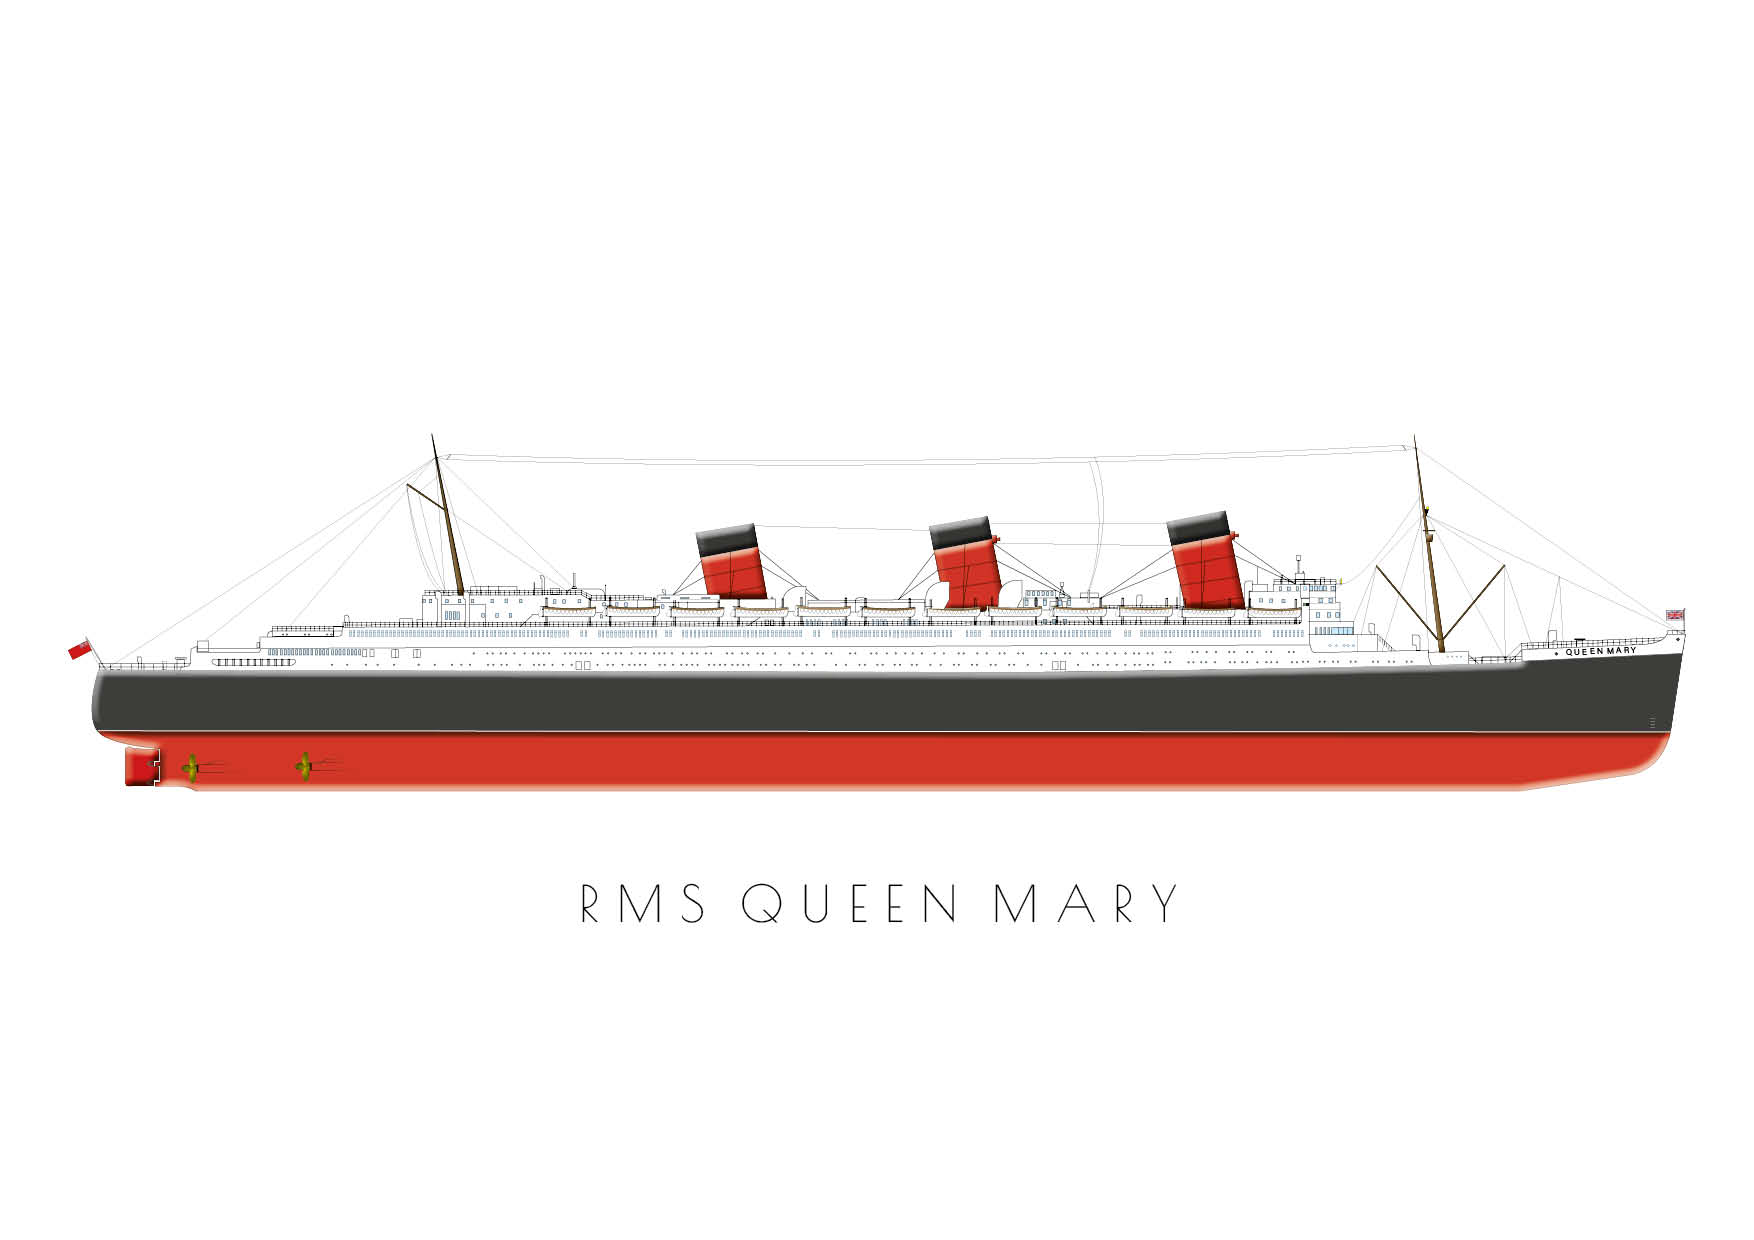 RMS Queen Mary - Postcard